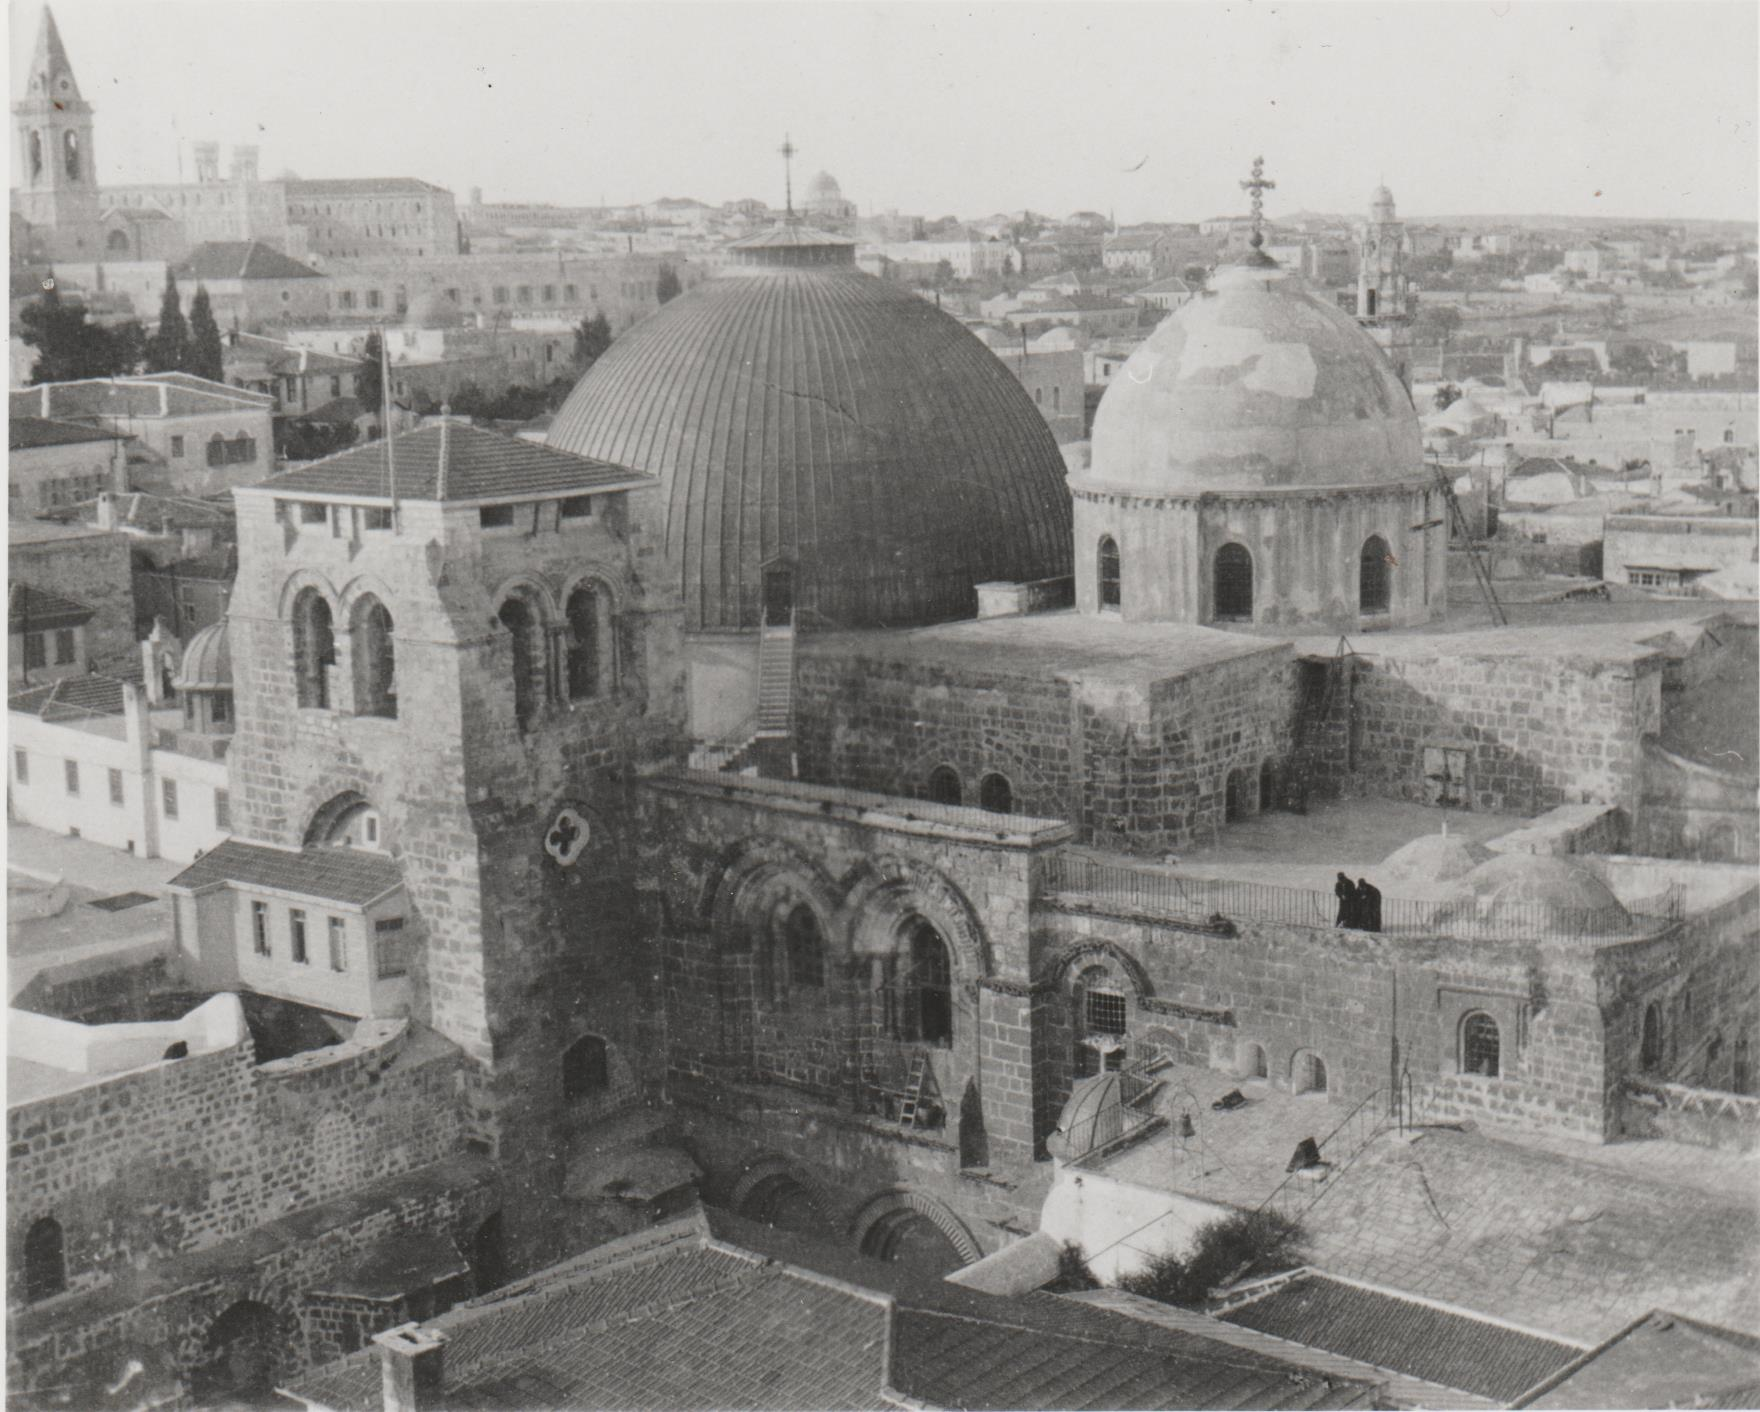 Gertrude Bell 1900, Church of the Holy Sepulchre Old City Jerusalem, Gertrude Bell Archive Newcastle University